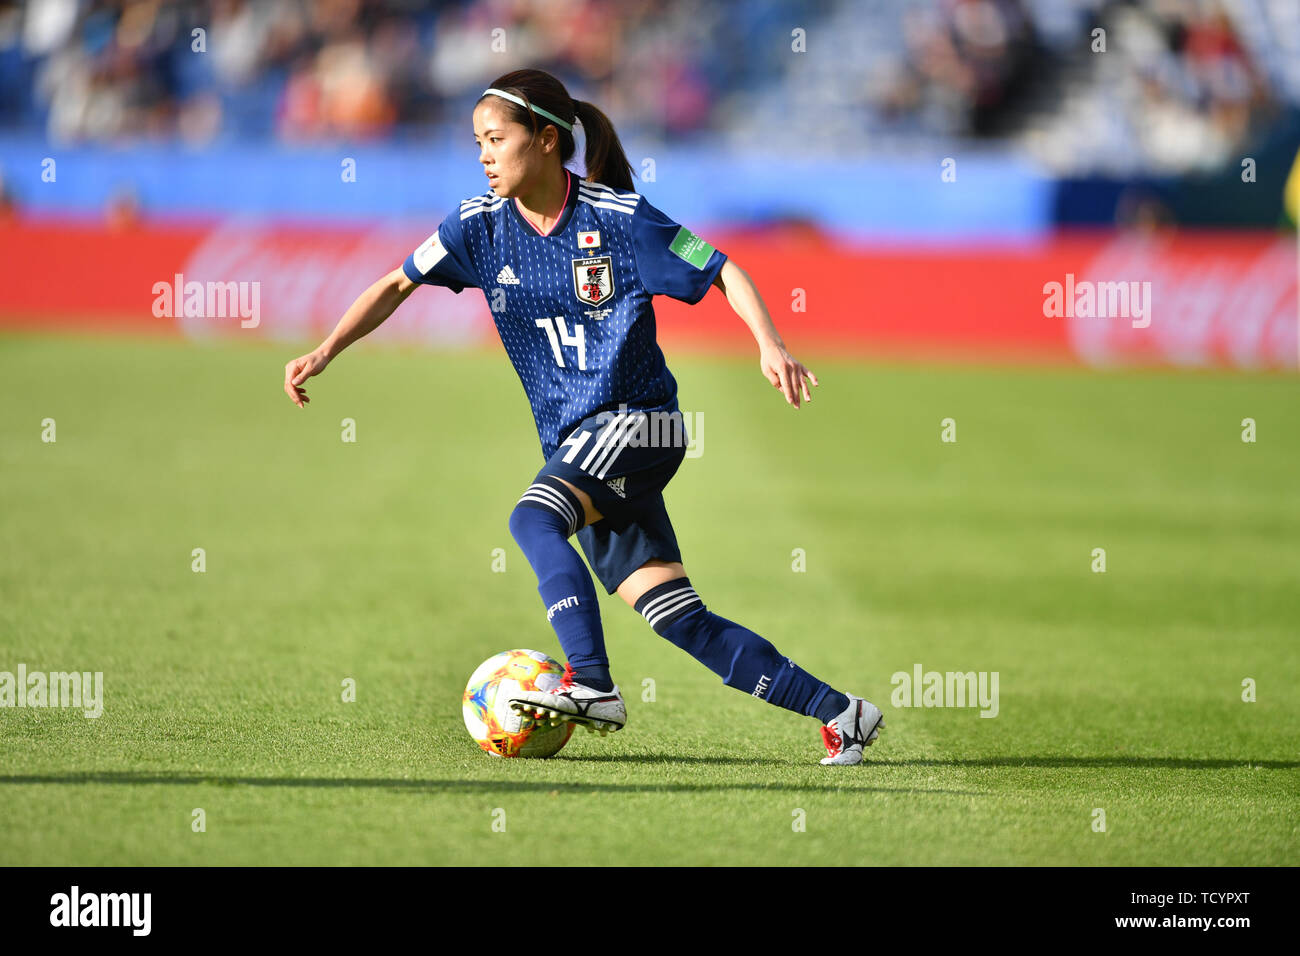 10 june 2019 Paris, France Soccer Women's World Cup France 2019: Argentina v Japan   Yui Hasegawa (Japan) (14) with Ball - Stock Image